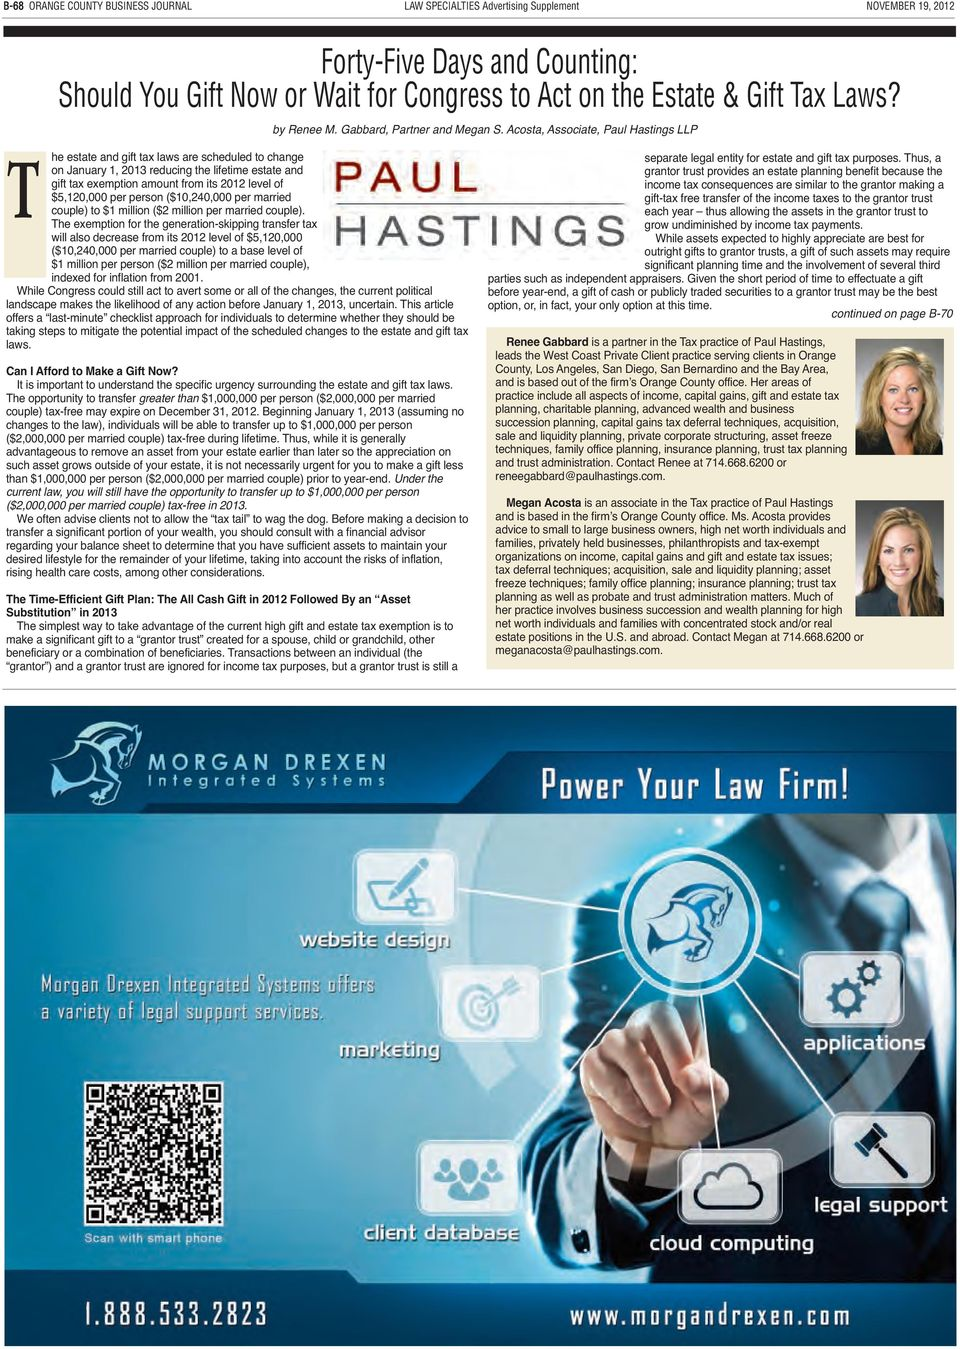 Acosta, Associate, Paul Hastings LLP T he estate and gift tax laws are scheduled to change on January 1, 2013 reducing the lifetime estate and gift tax exemption amount from its 2012 level of